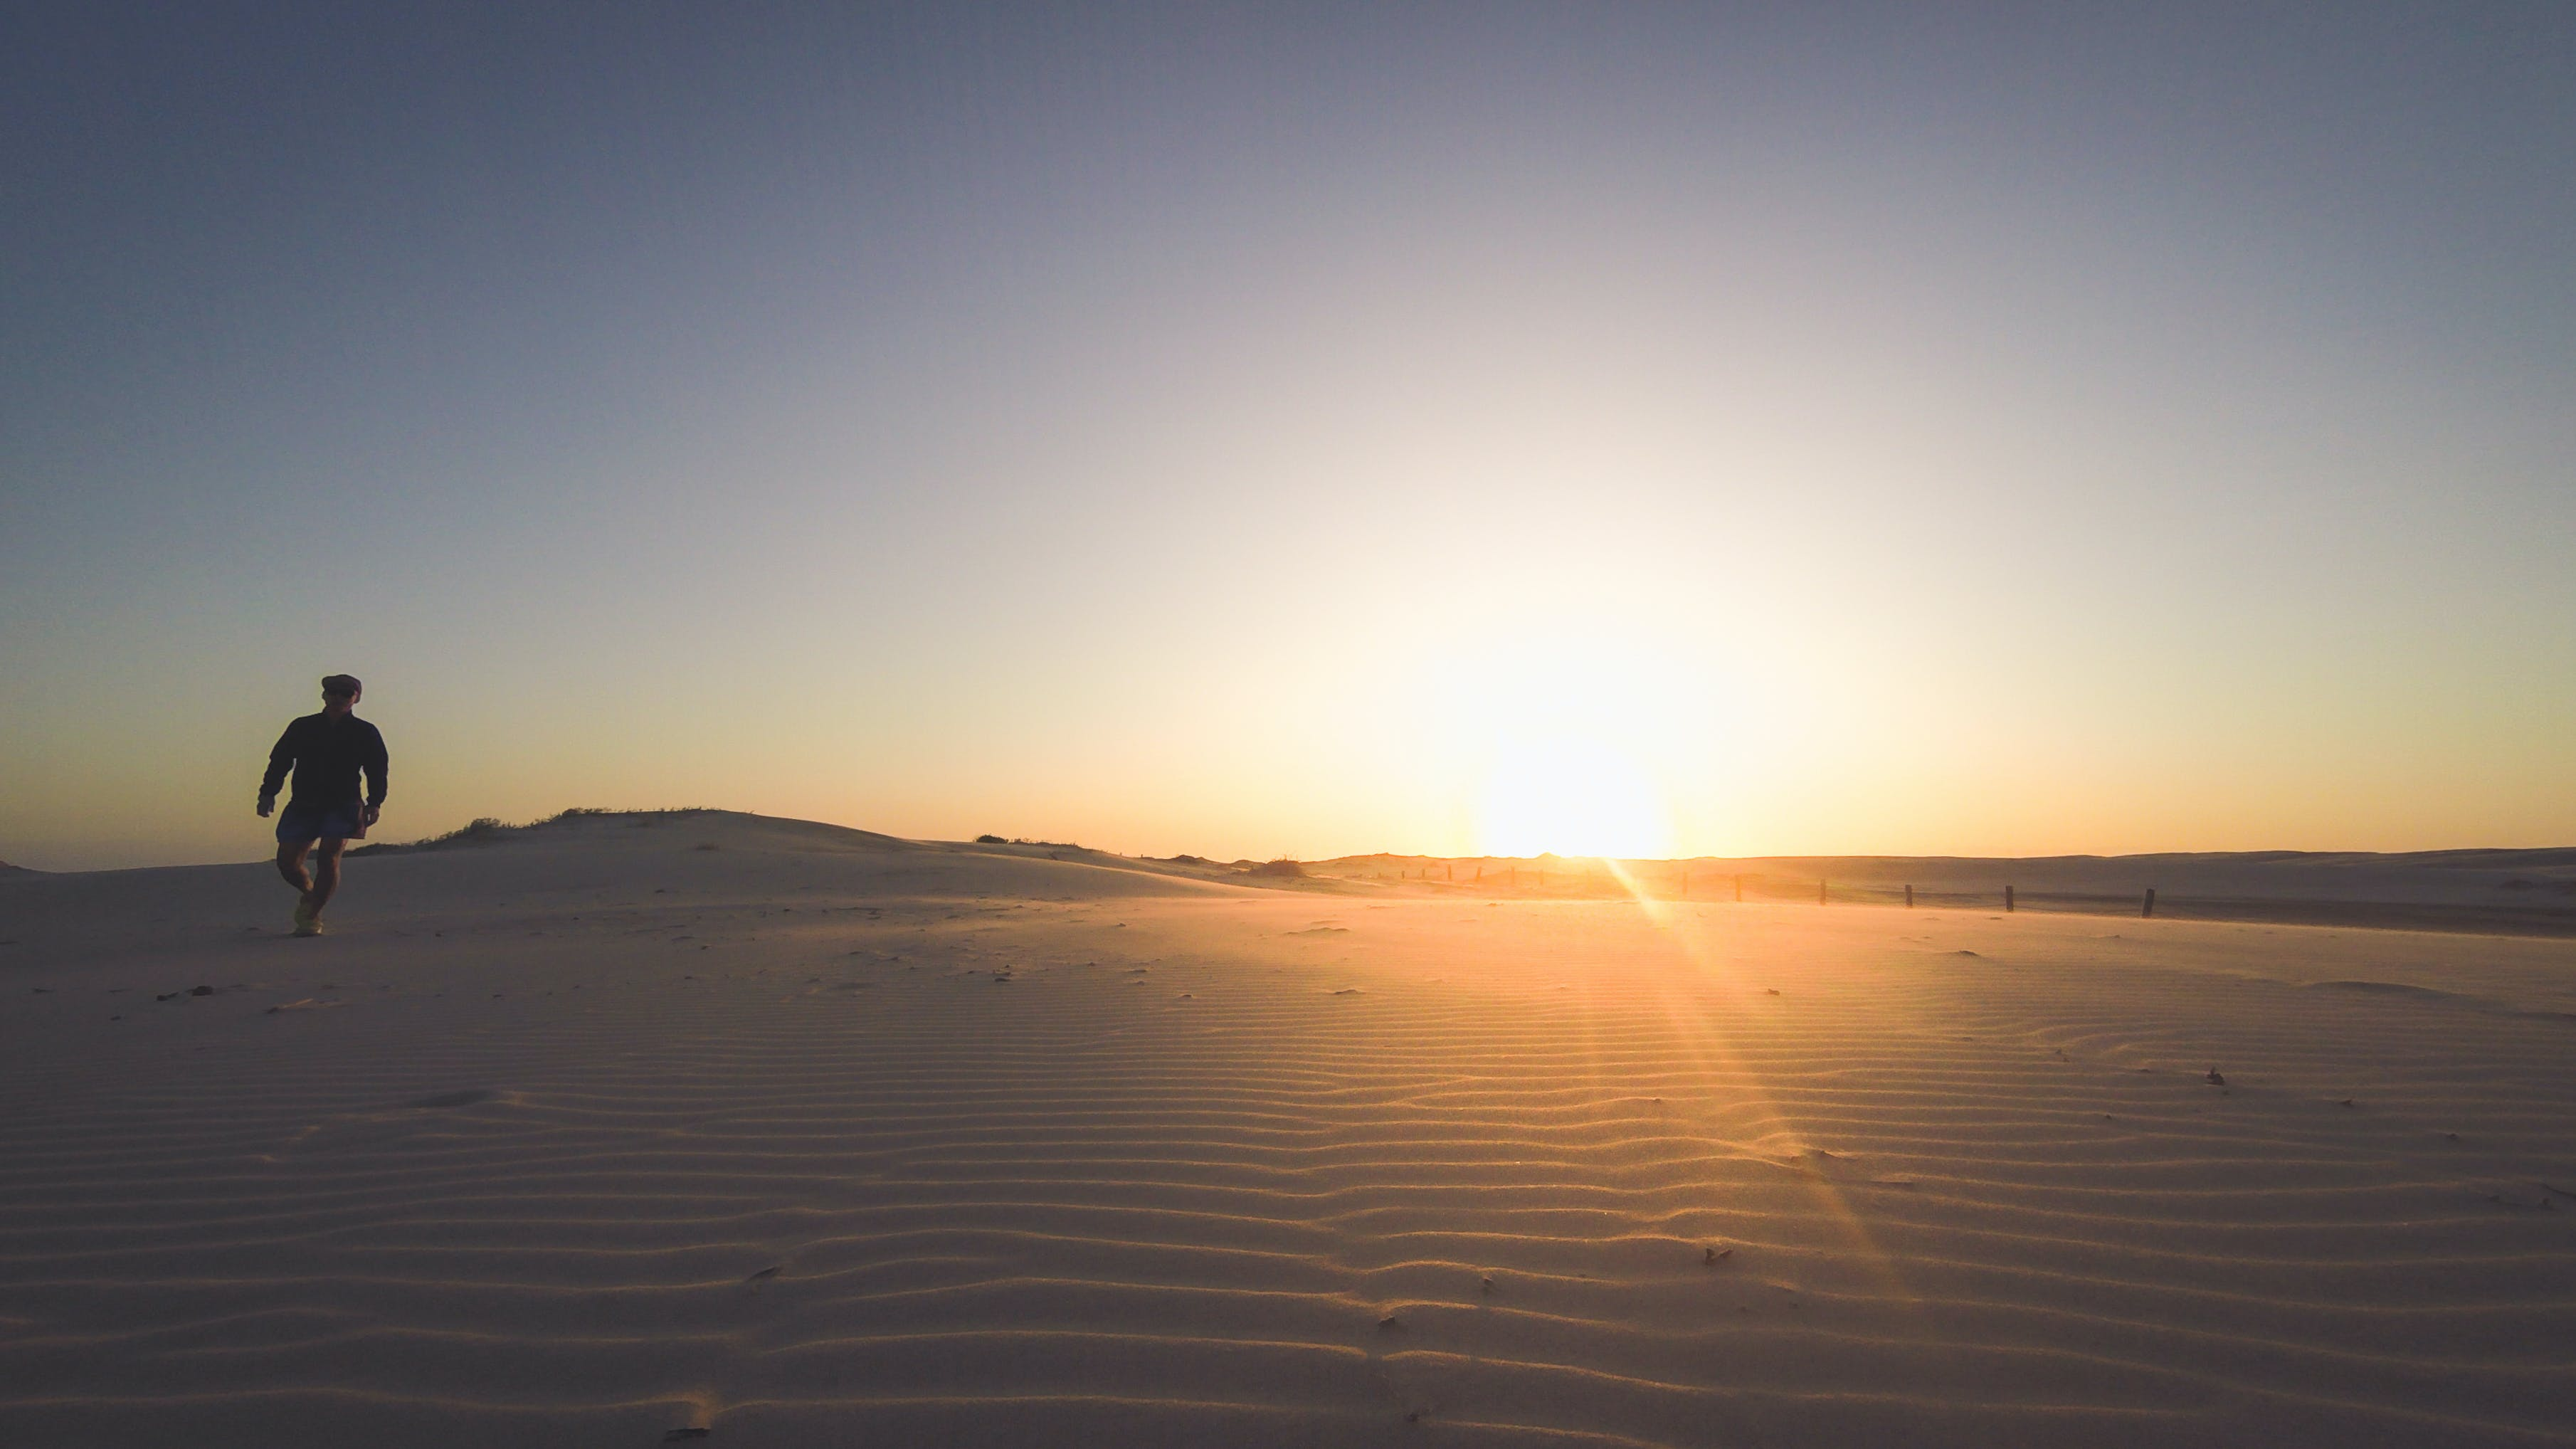 Person Standing on Desert during Sunset